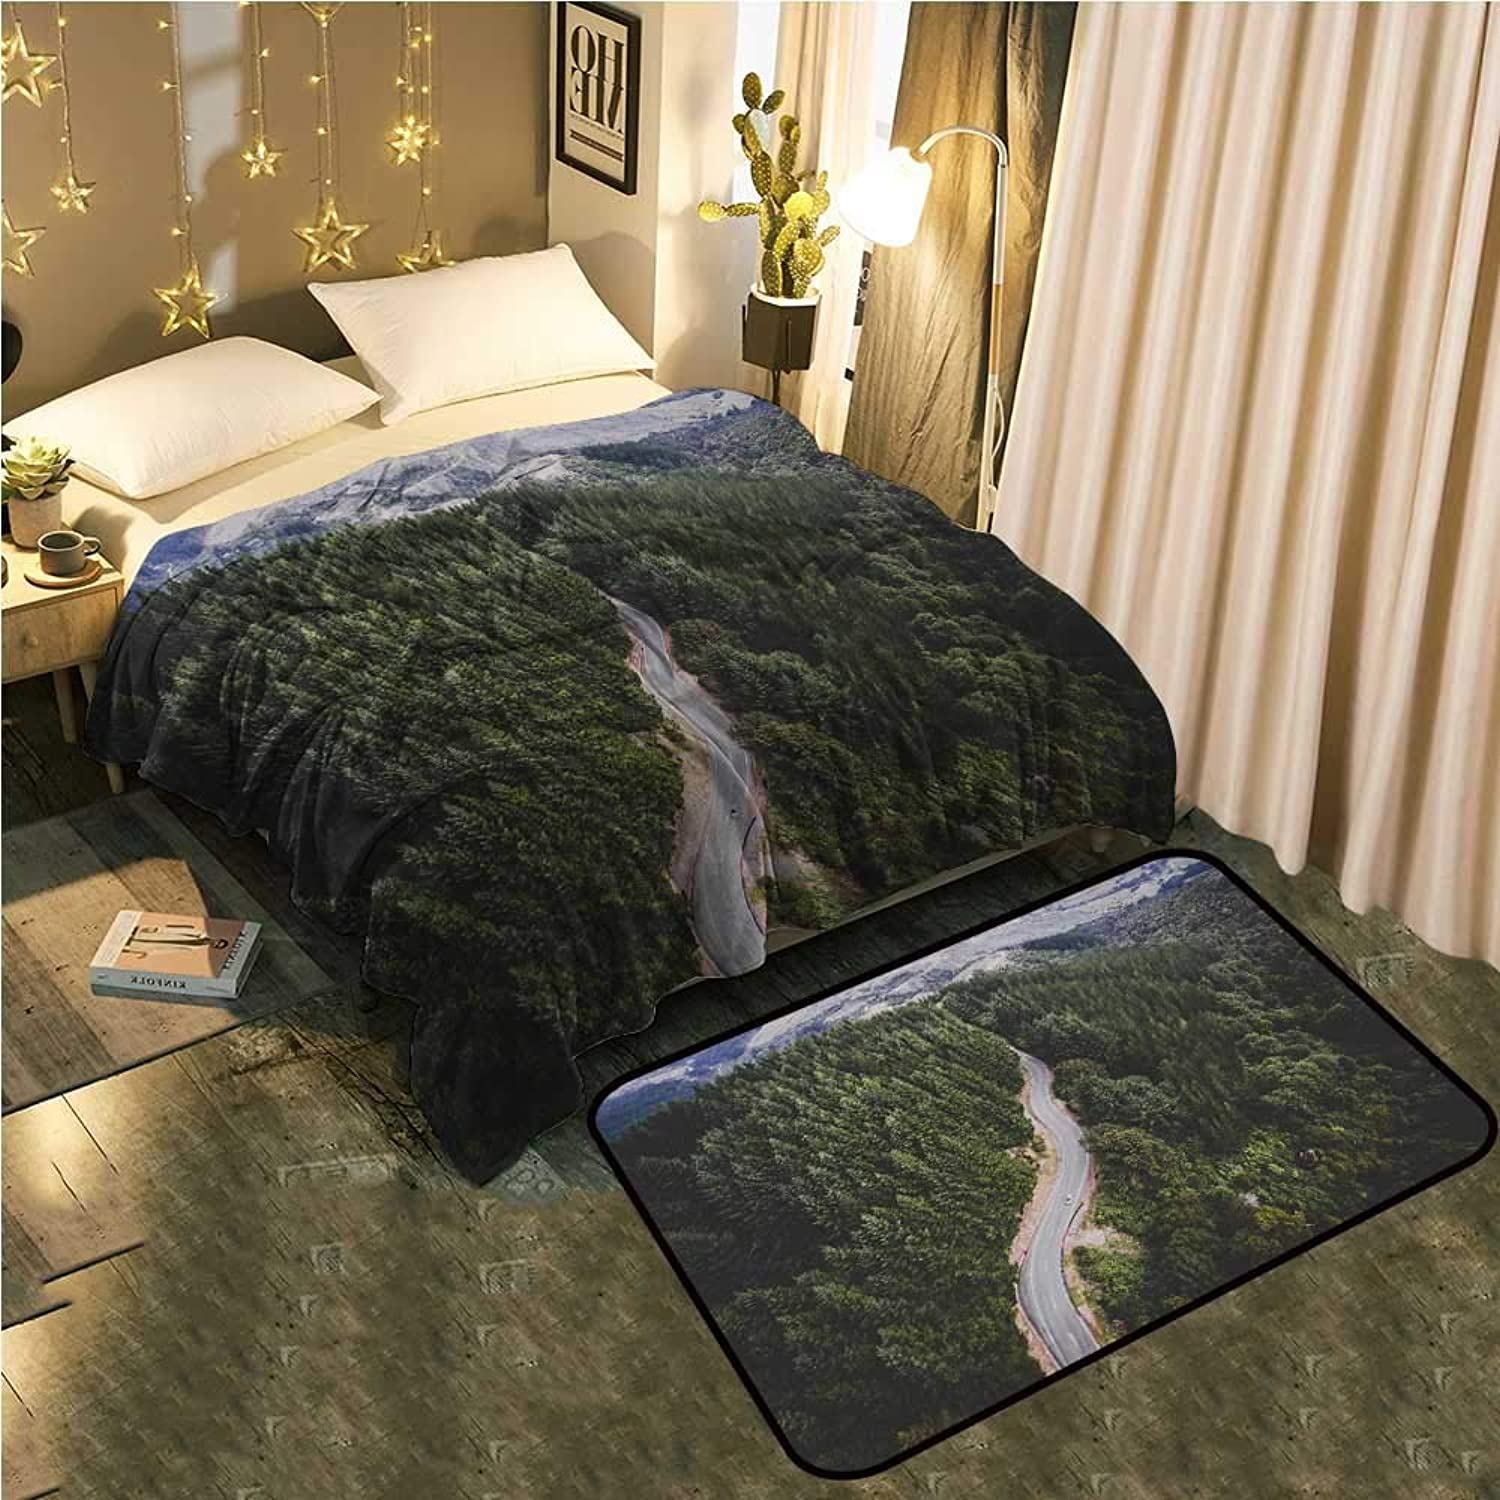 UNOSEKS-Home Bedside Blanket Doormat suitA Forest Road for Aerial Photography Cozy and Durable Blanket 50 x70  Mat 2'X4'